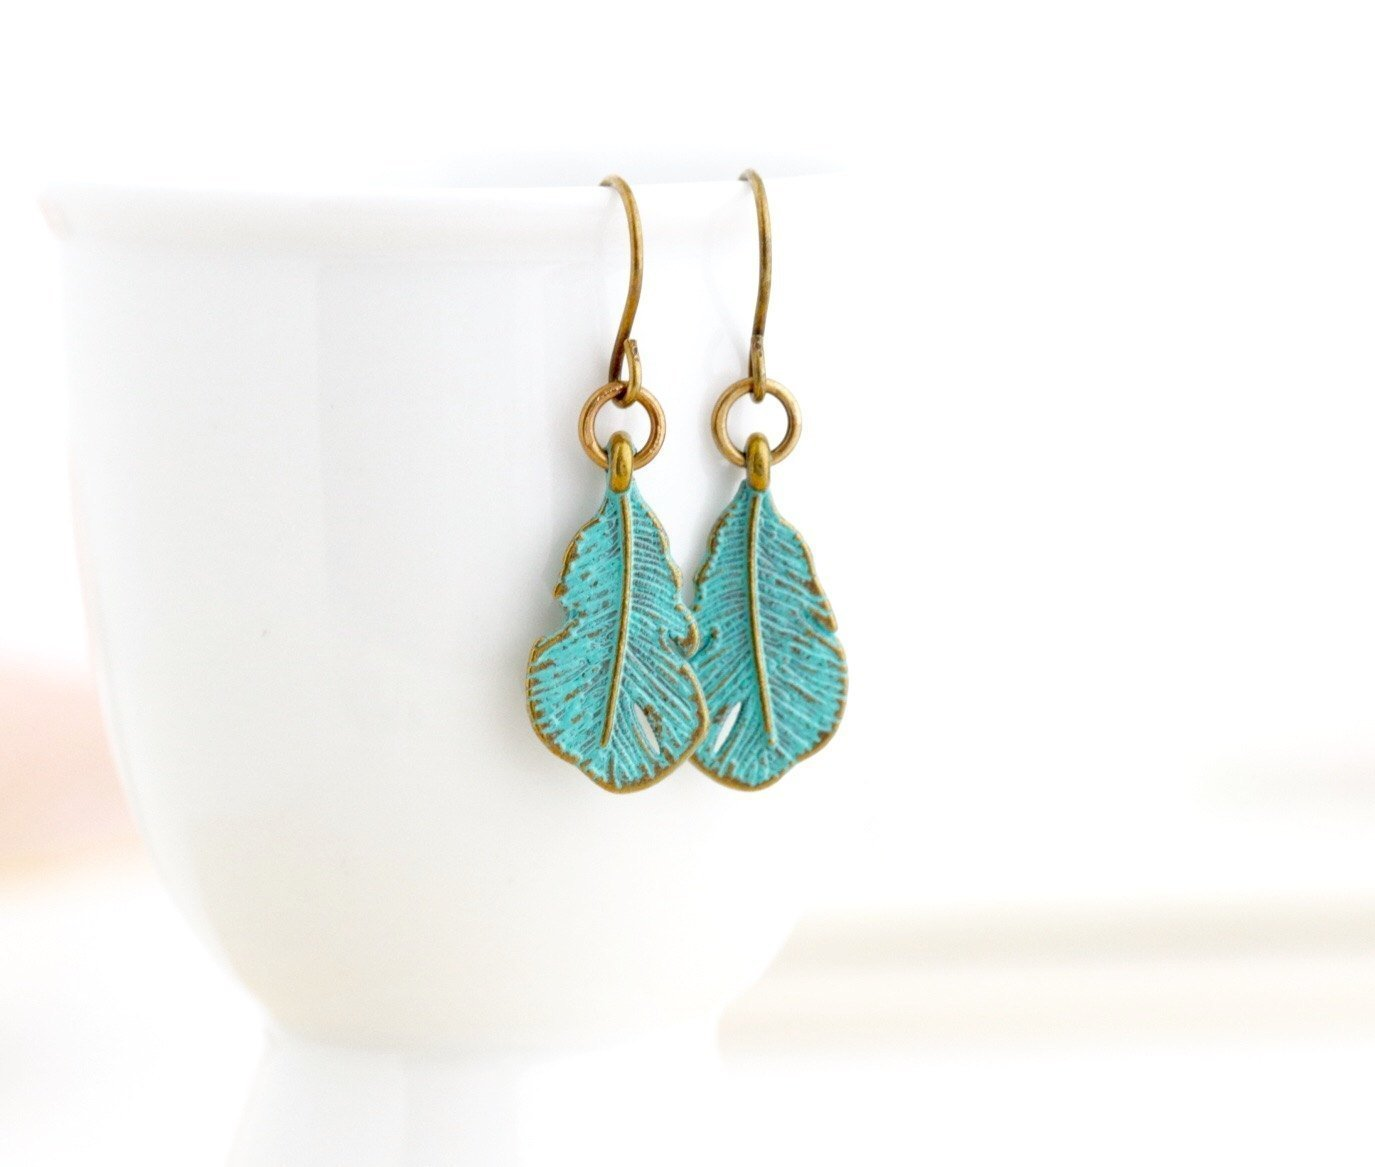 Green Feather Earrings With Brass Ear Wires